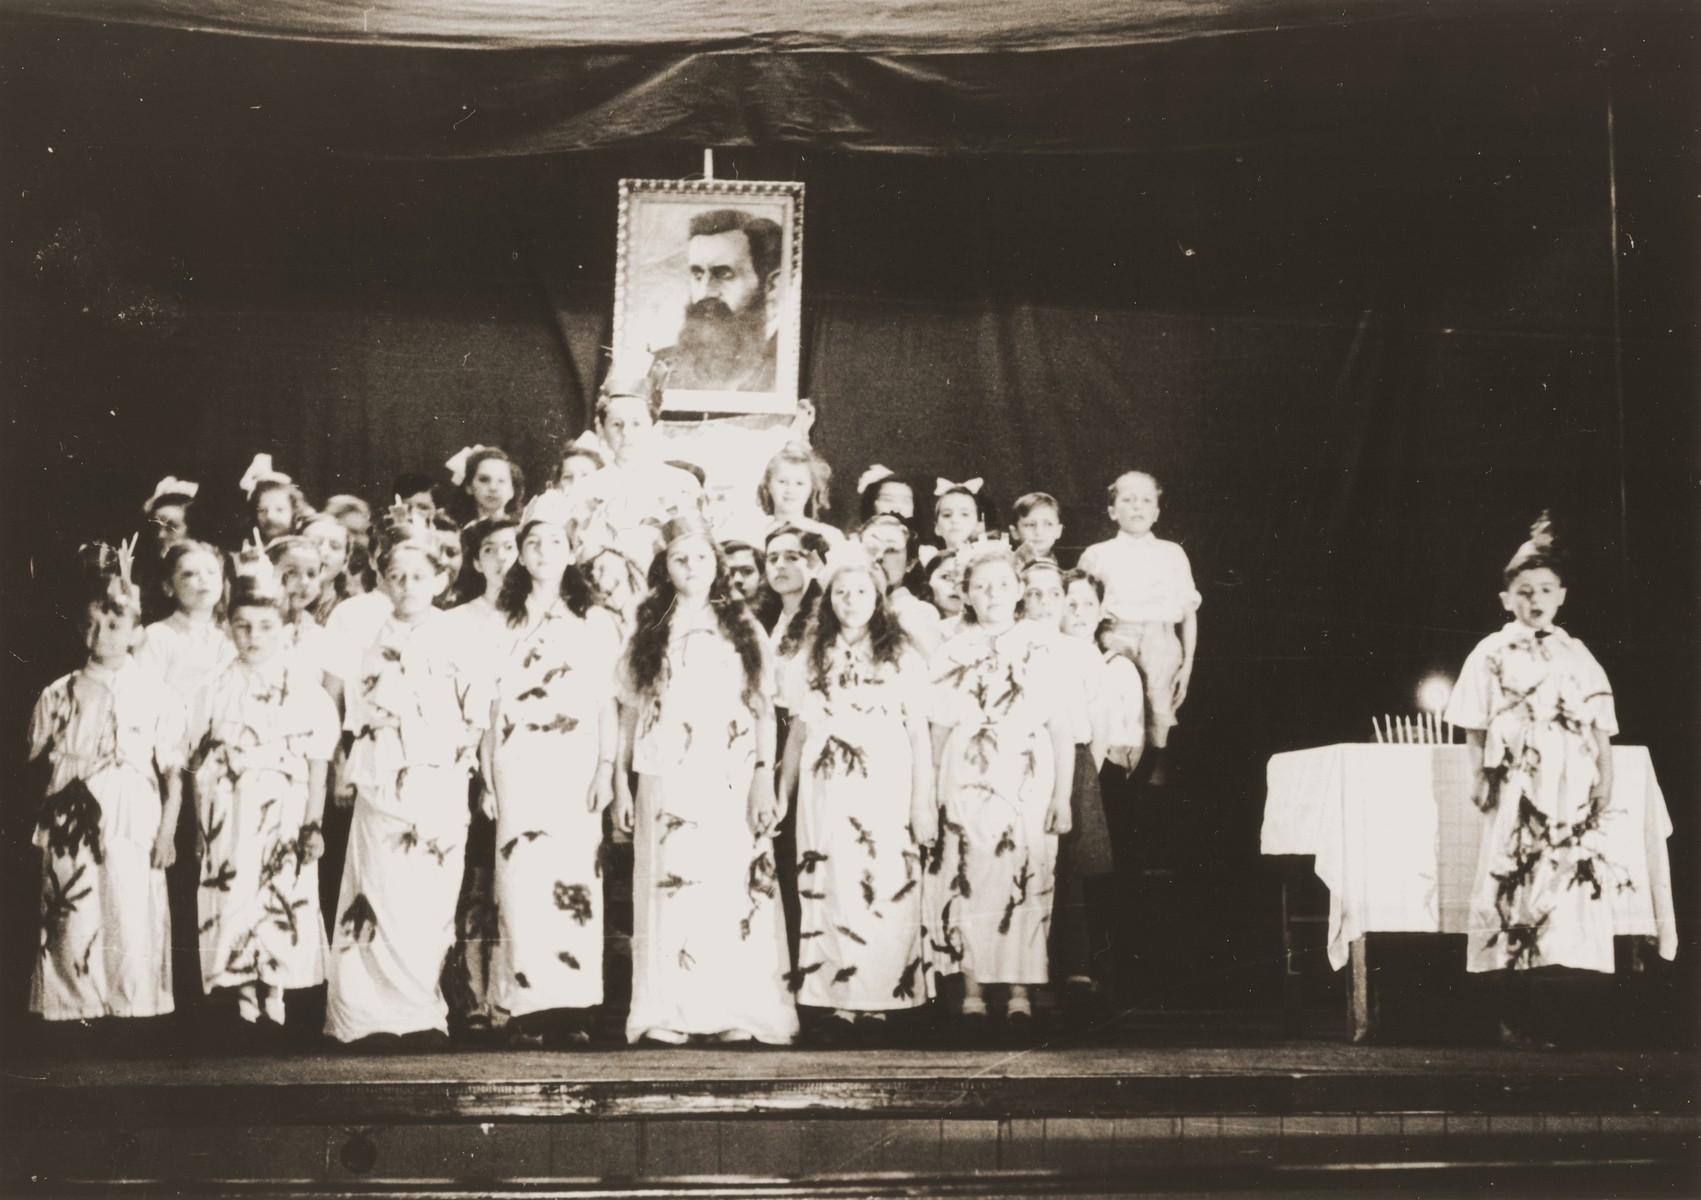 Children put on a Hannuka play in front of a portrait of Theodore Herzl in the Feldafing DP camp.